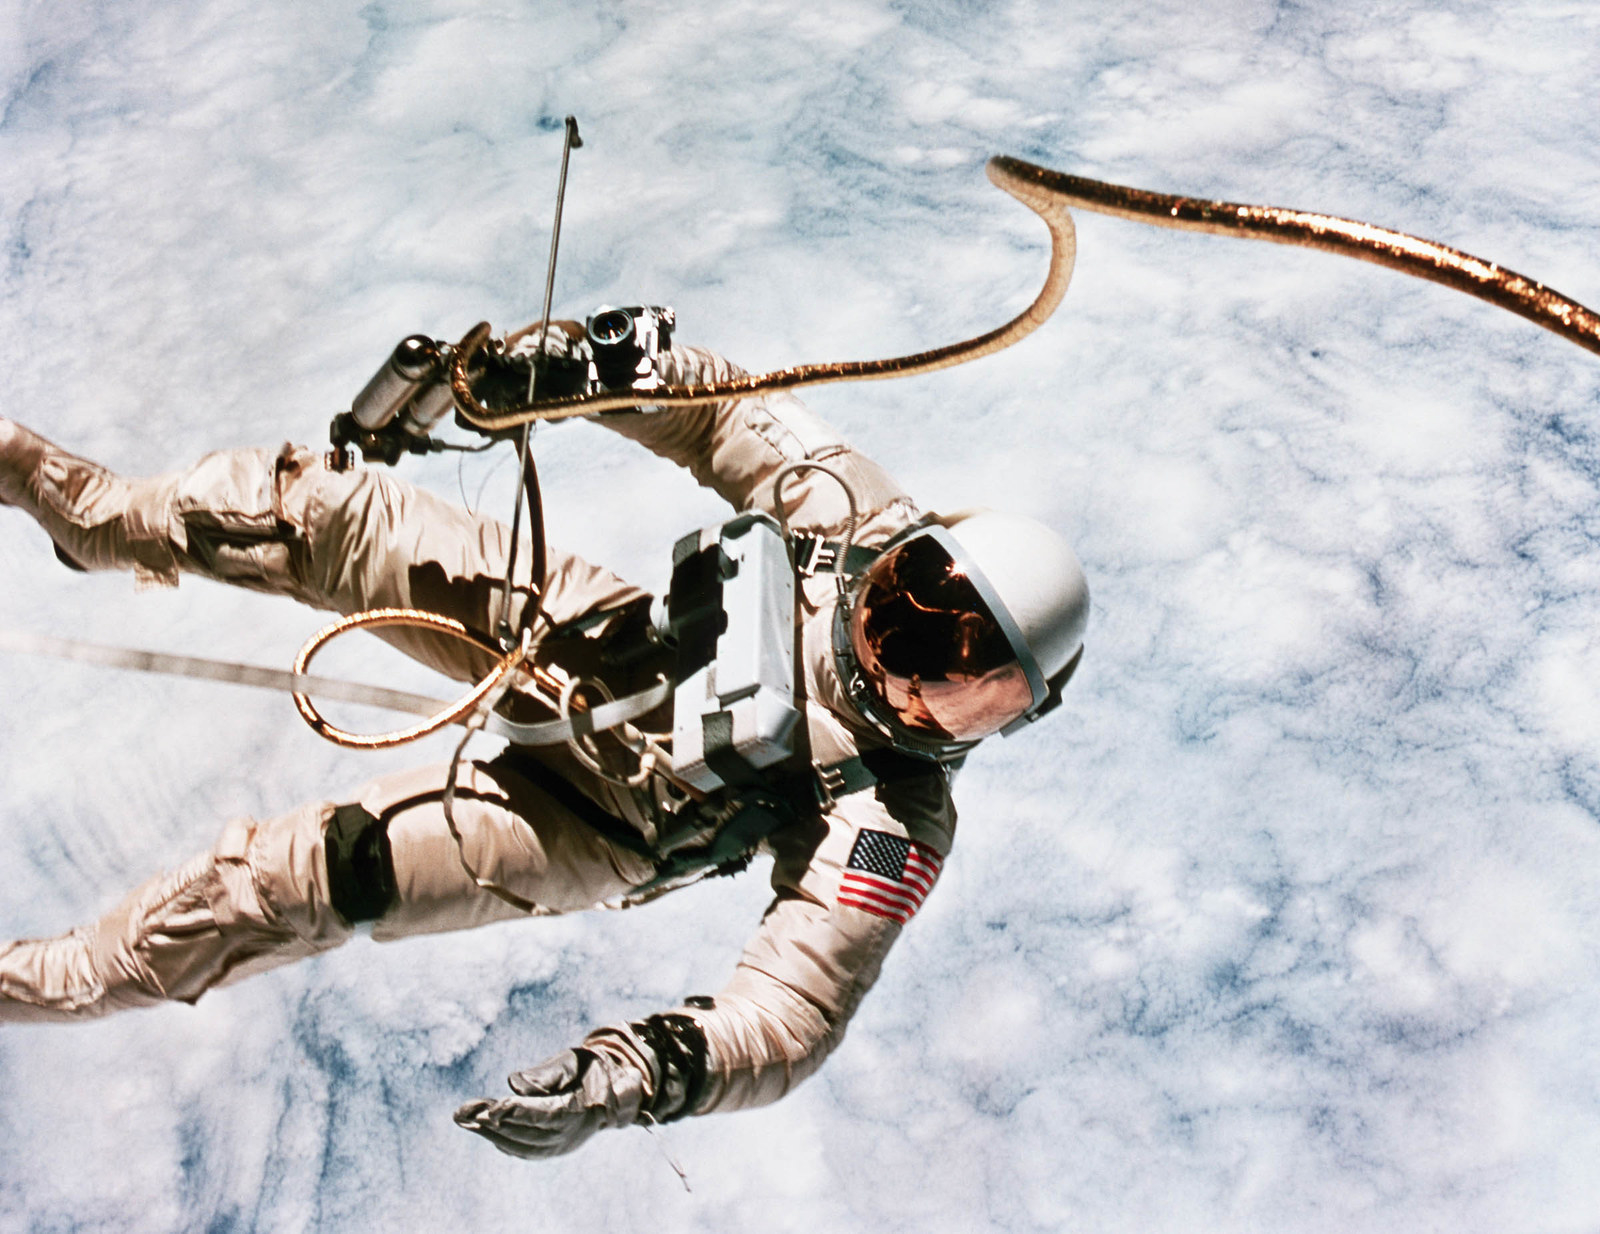 1965 The first spacewalk in US history was made by astronaut Edward H. White during the Gemini 4 mission.